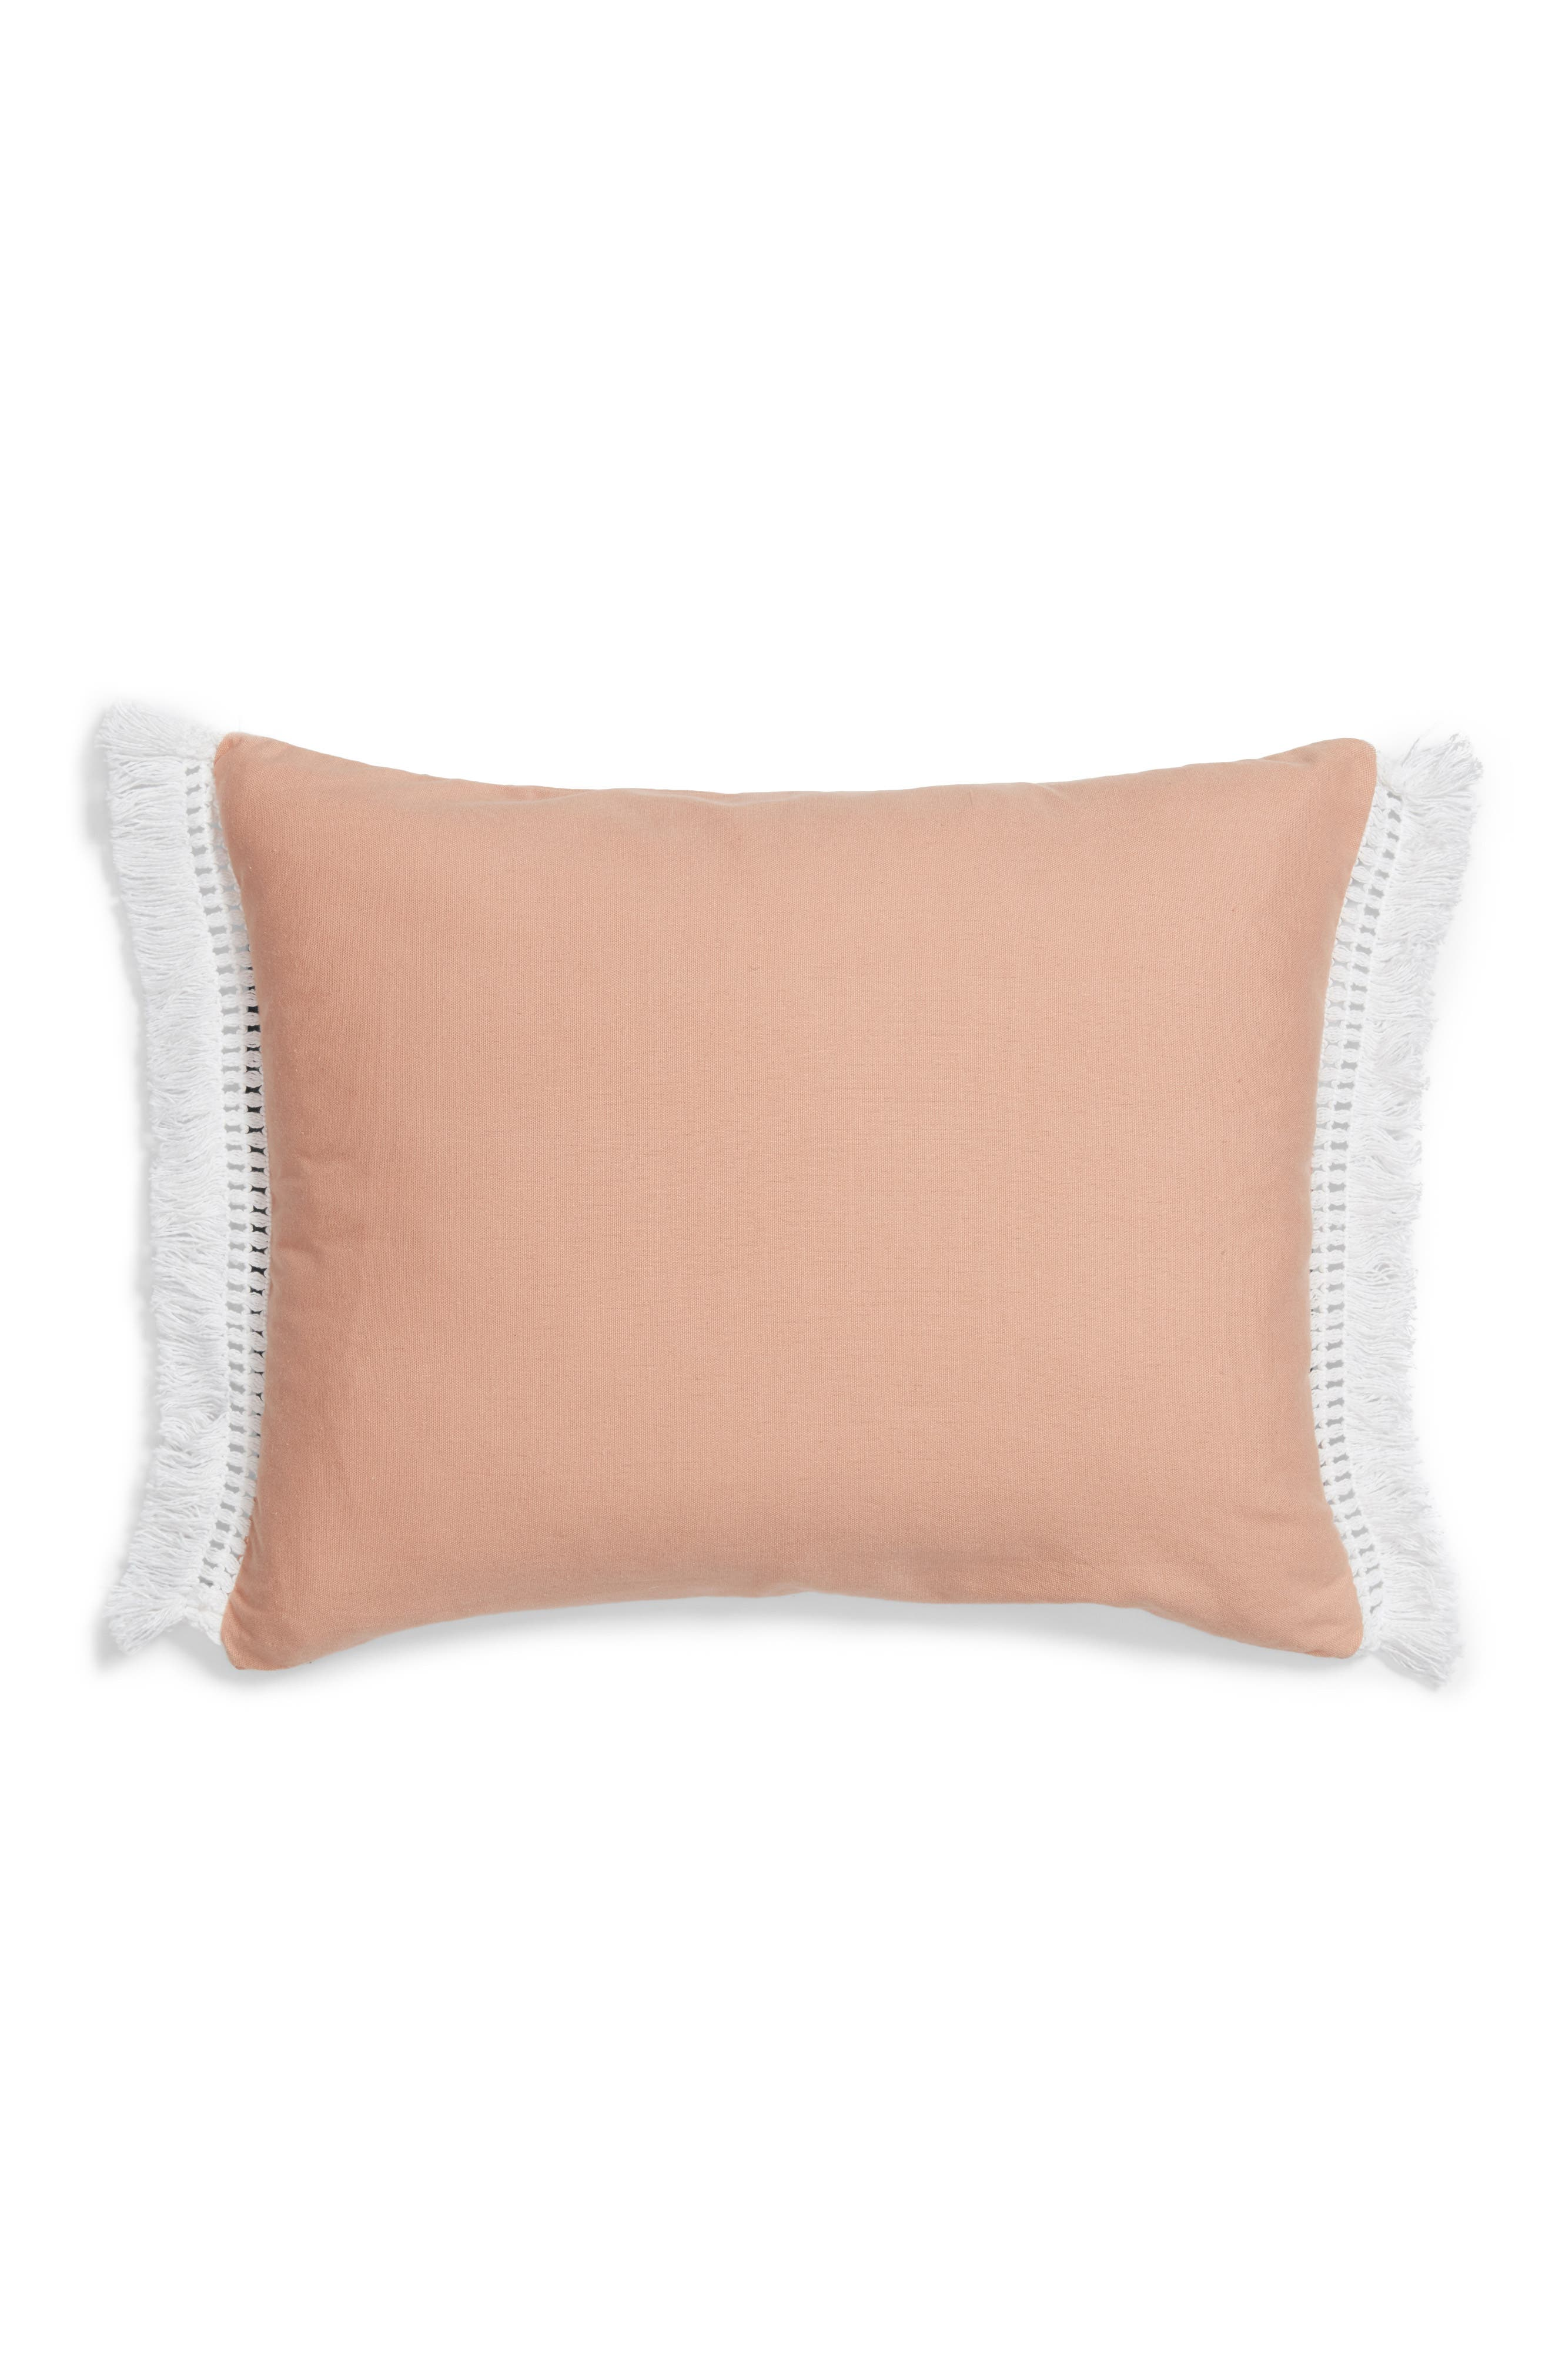 Bree Embroidered Accent Pillow,                             Alternate thumbnail 3, color,                             Blush